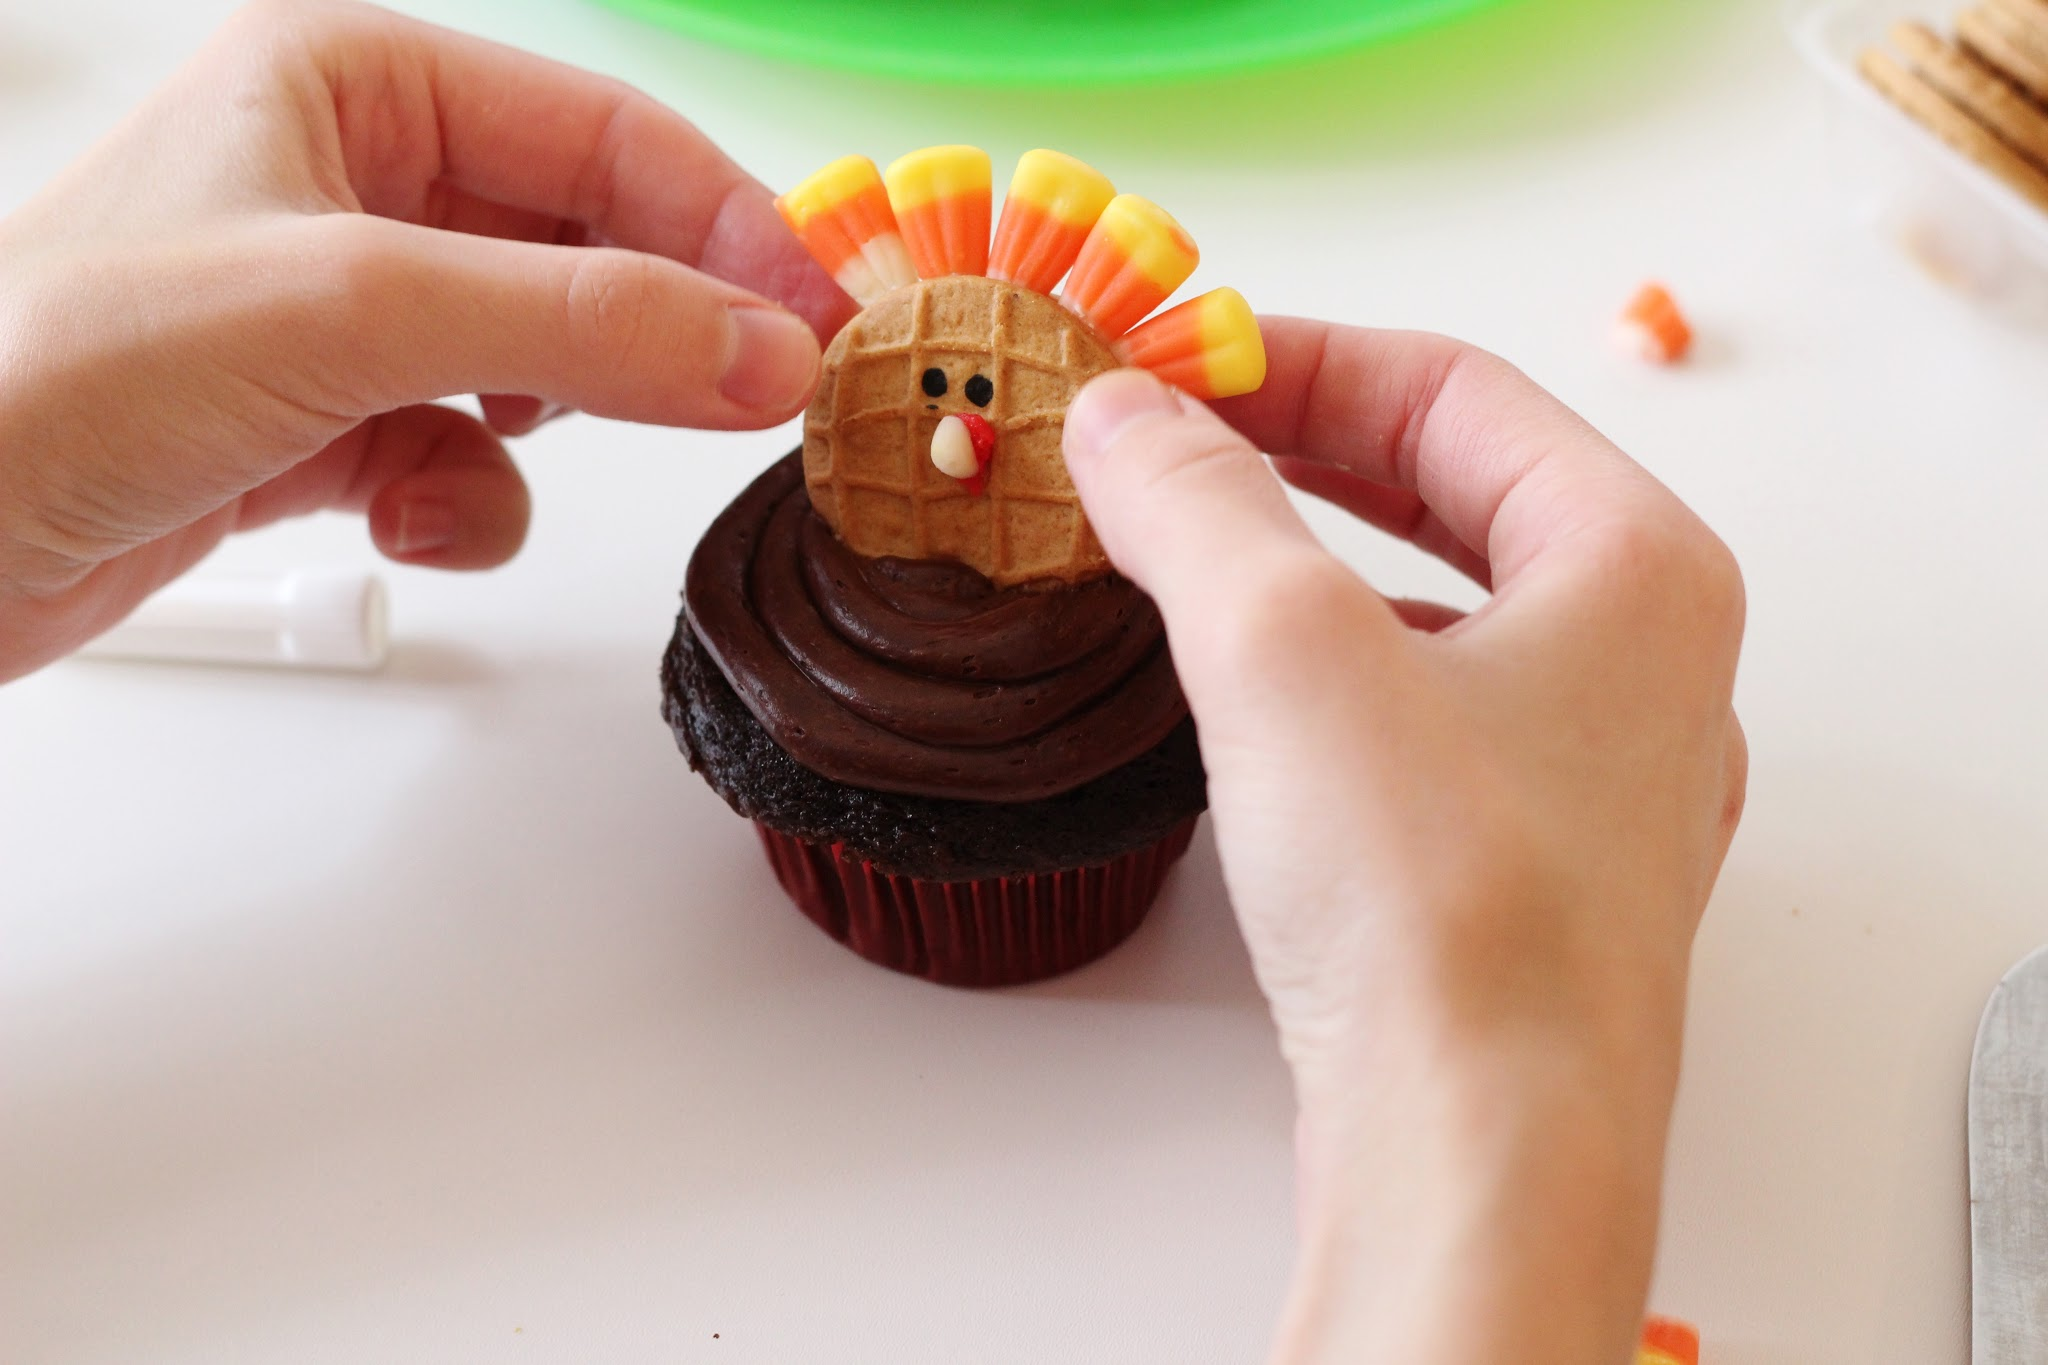 Turkey cupcakes. Simple turkey cupcakes. Thanksgiving turkey cupcakes. Easy turkey cupcakes. Turkey cupcakes with candy corn. Turkey cupcakes with nutter butter. #thanksgiving #turkey #cupcakes #baking #treats #kids #holiday #fall